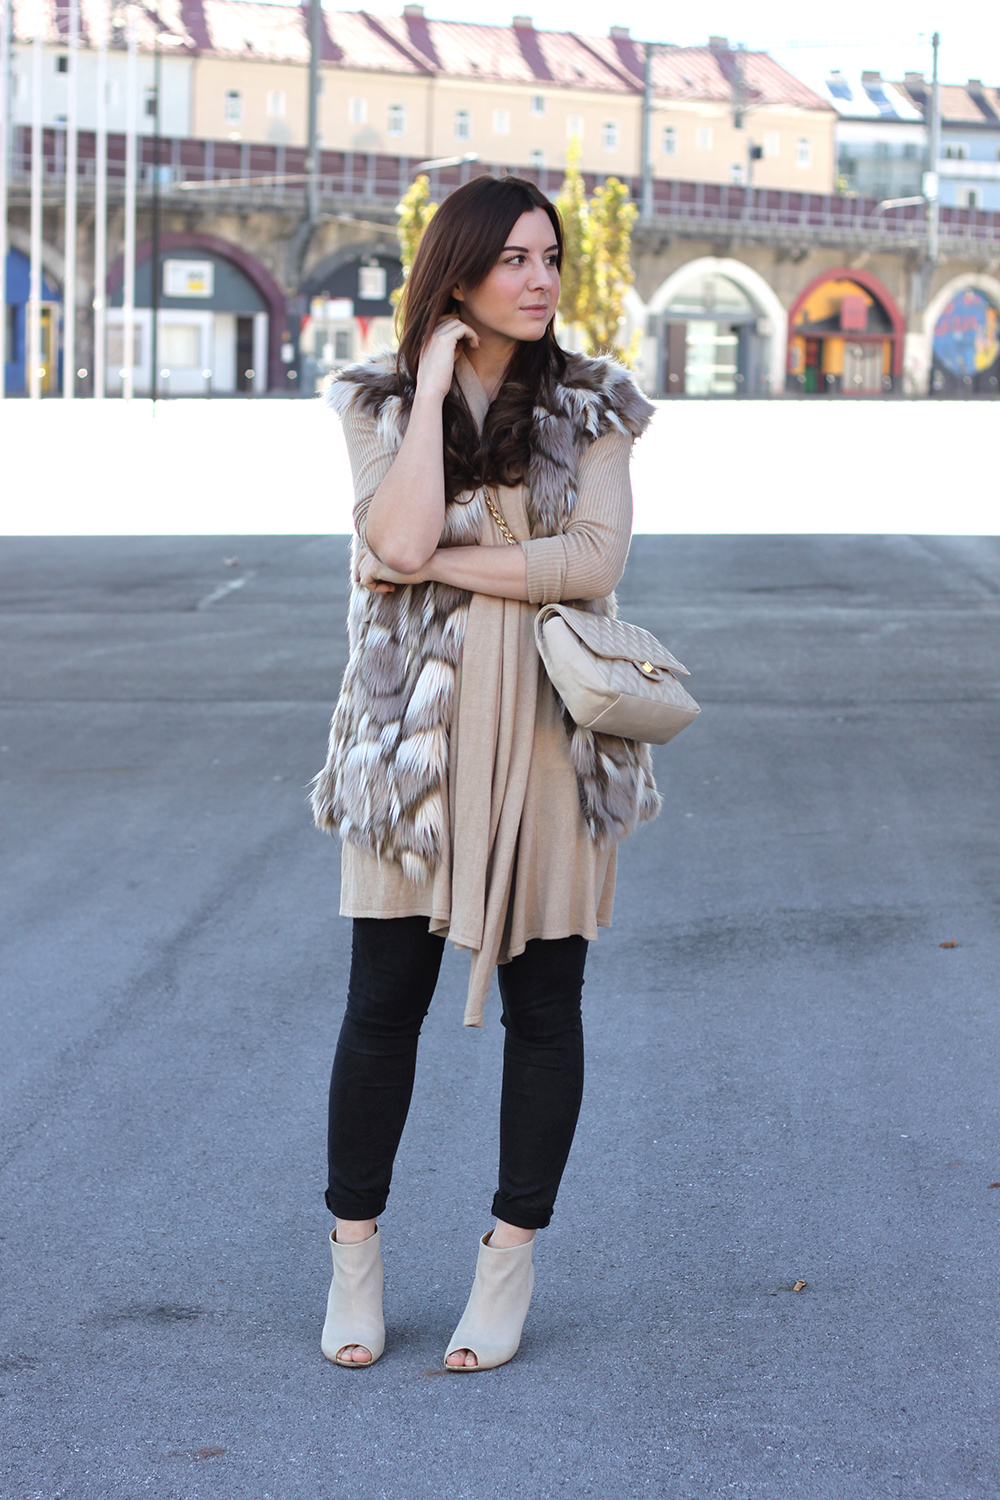 who is mocca, fashionblog, beautyblog, interiorblog, lifestyleblog, tirol, fake fur weste, how to style, how to wear, peep toe wedges cos, kleiderkreisel, gesteppte Handtasche, chanel lookalike